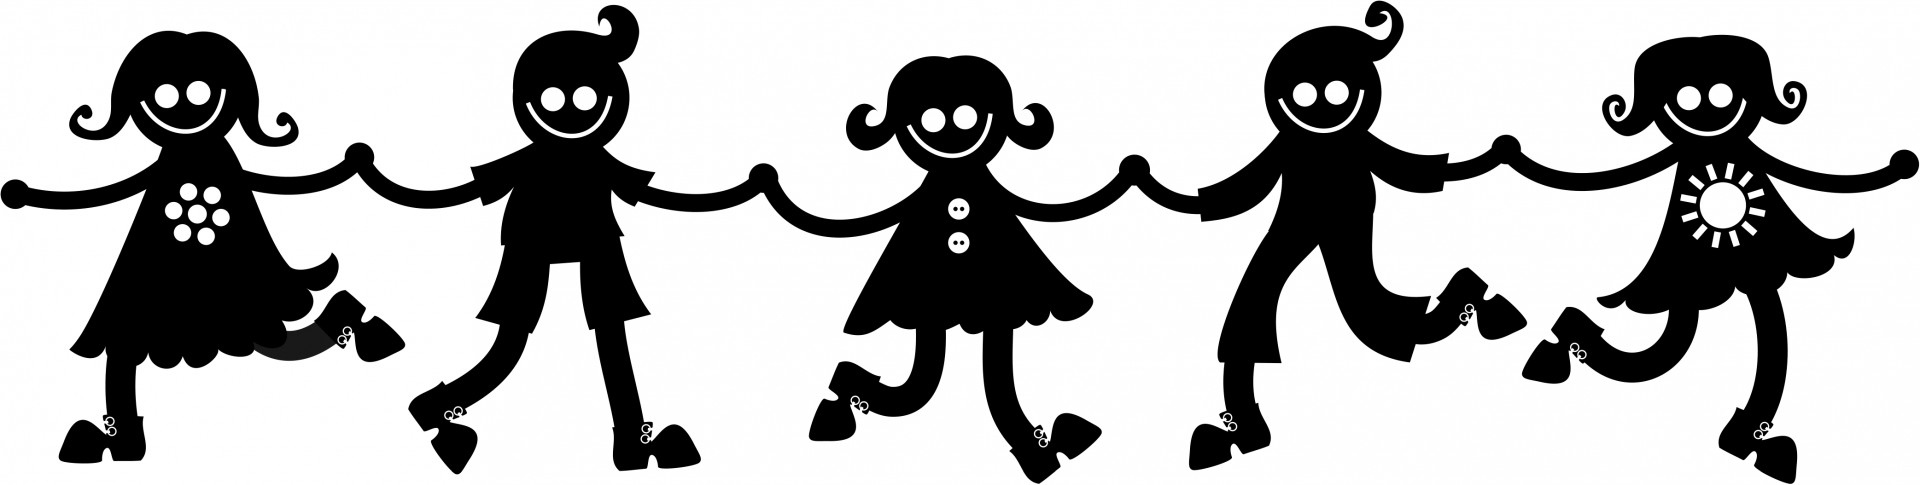 Silhouette Kids Holding Hands Free Stock Photo.